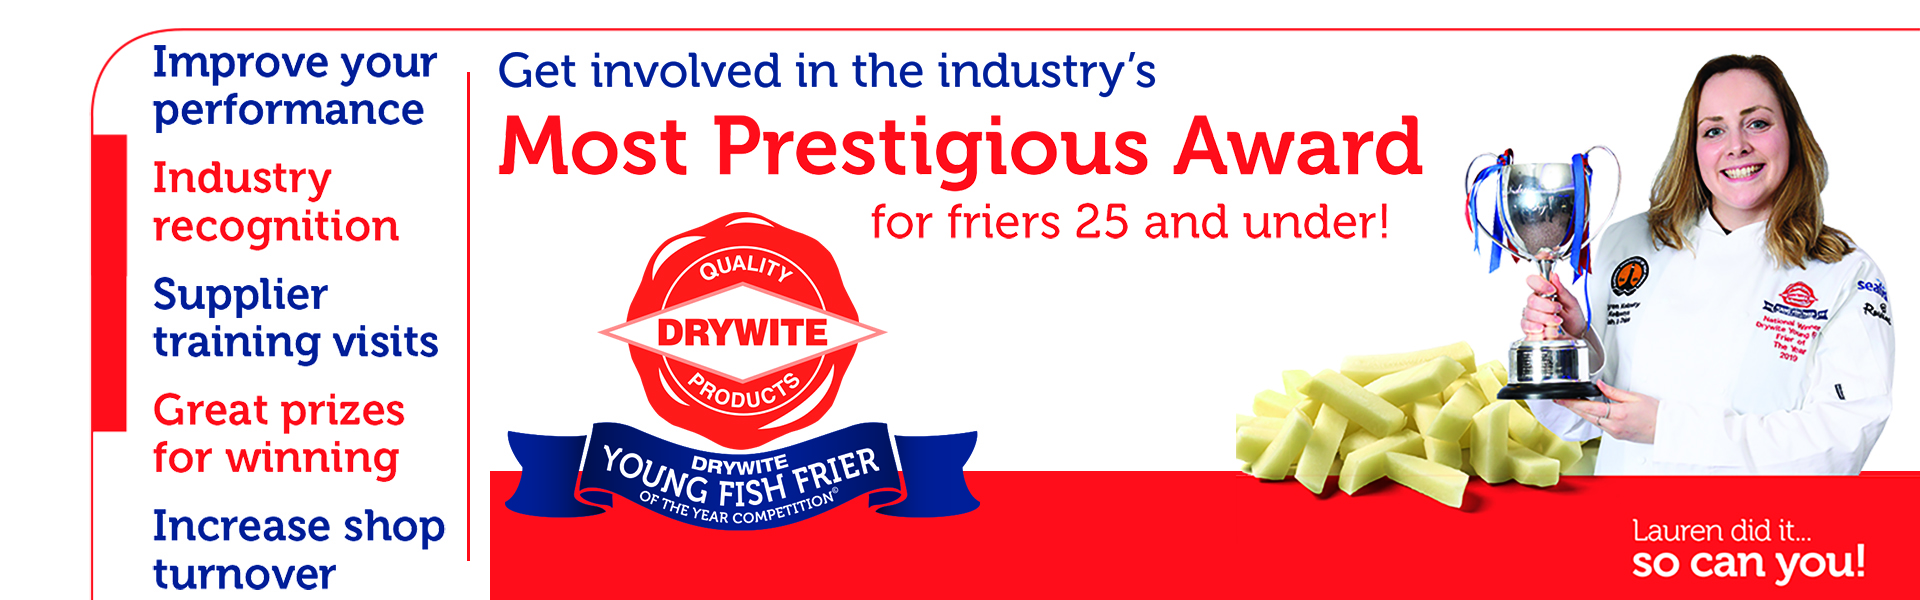 Drywite Young Fish Frier of the Year